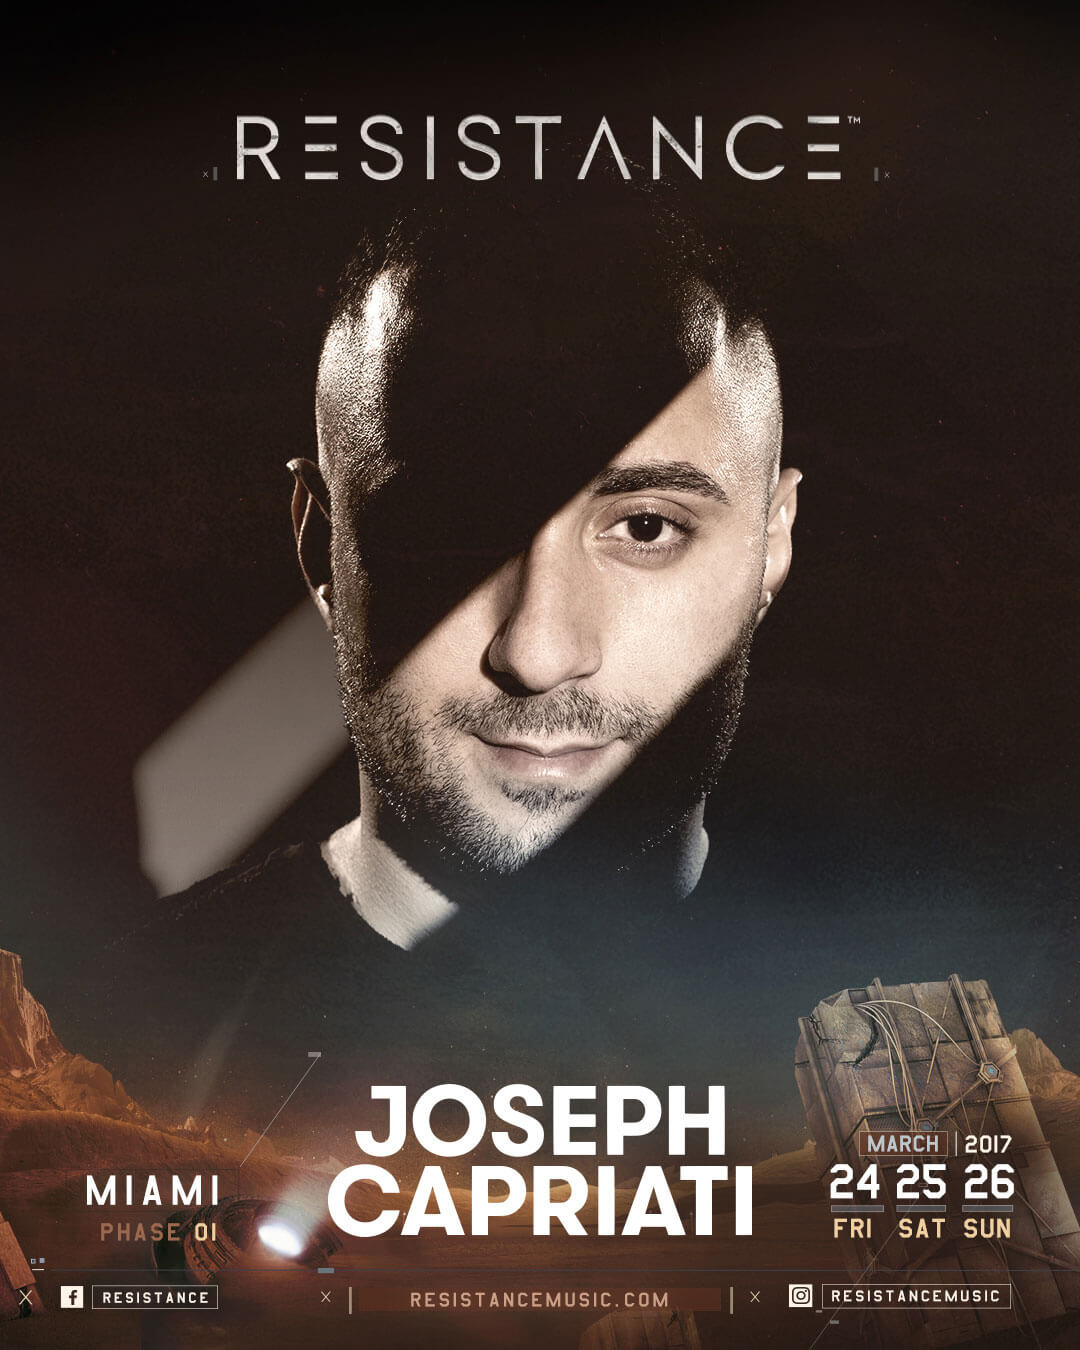 Joseph Capriati Releases New Studio Mix in Time For Resistance MegaStructure Performance